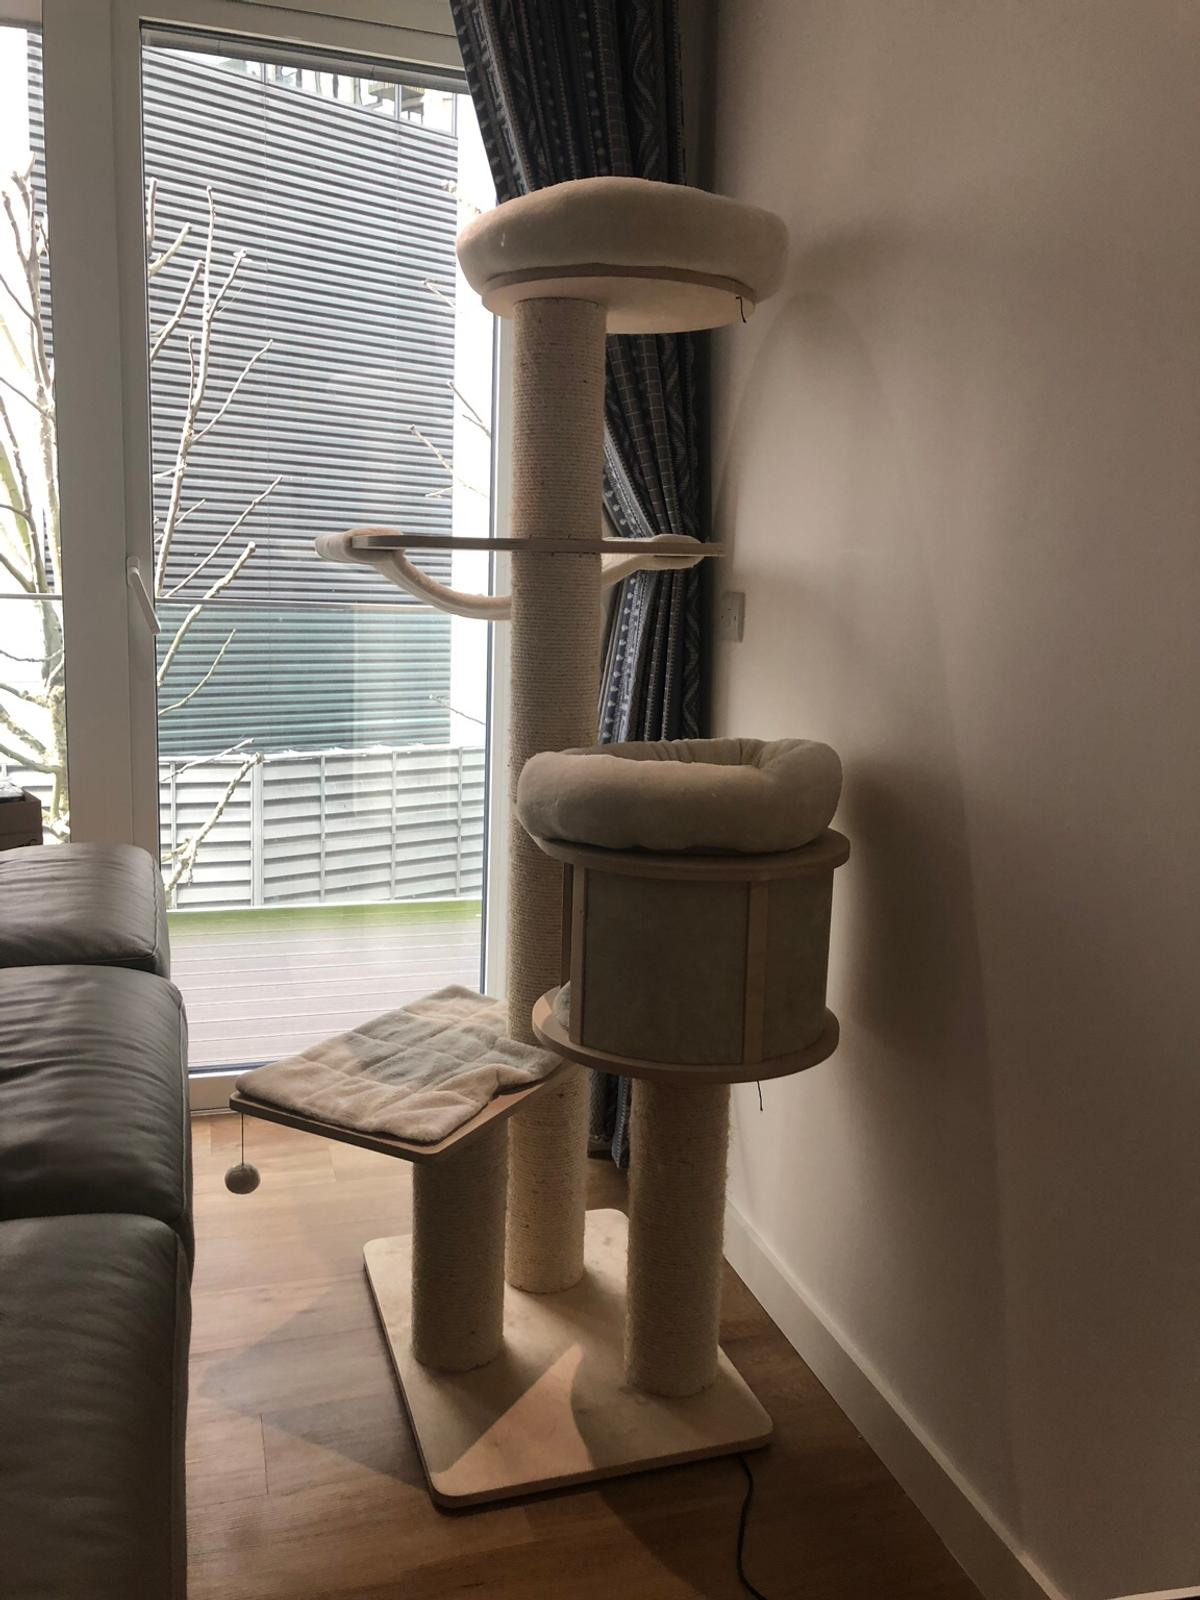 Cat Tree Natural Paradise Xl In E98 Hamlets For 40 00 For Sale Shpock